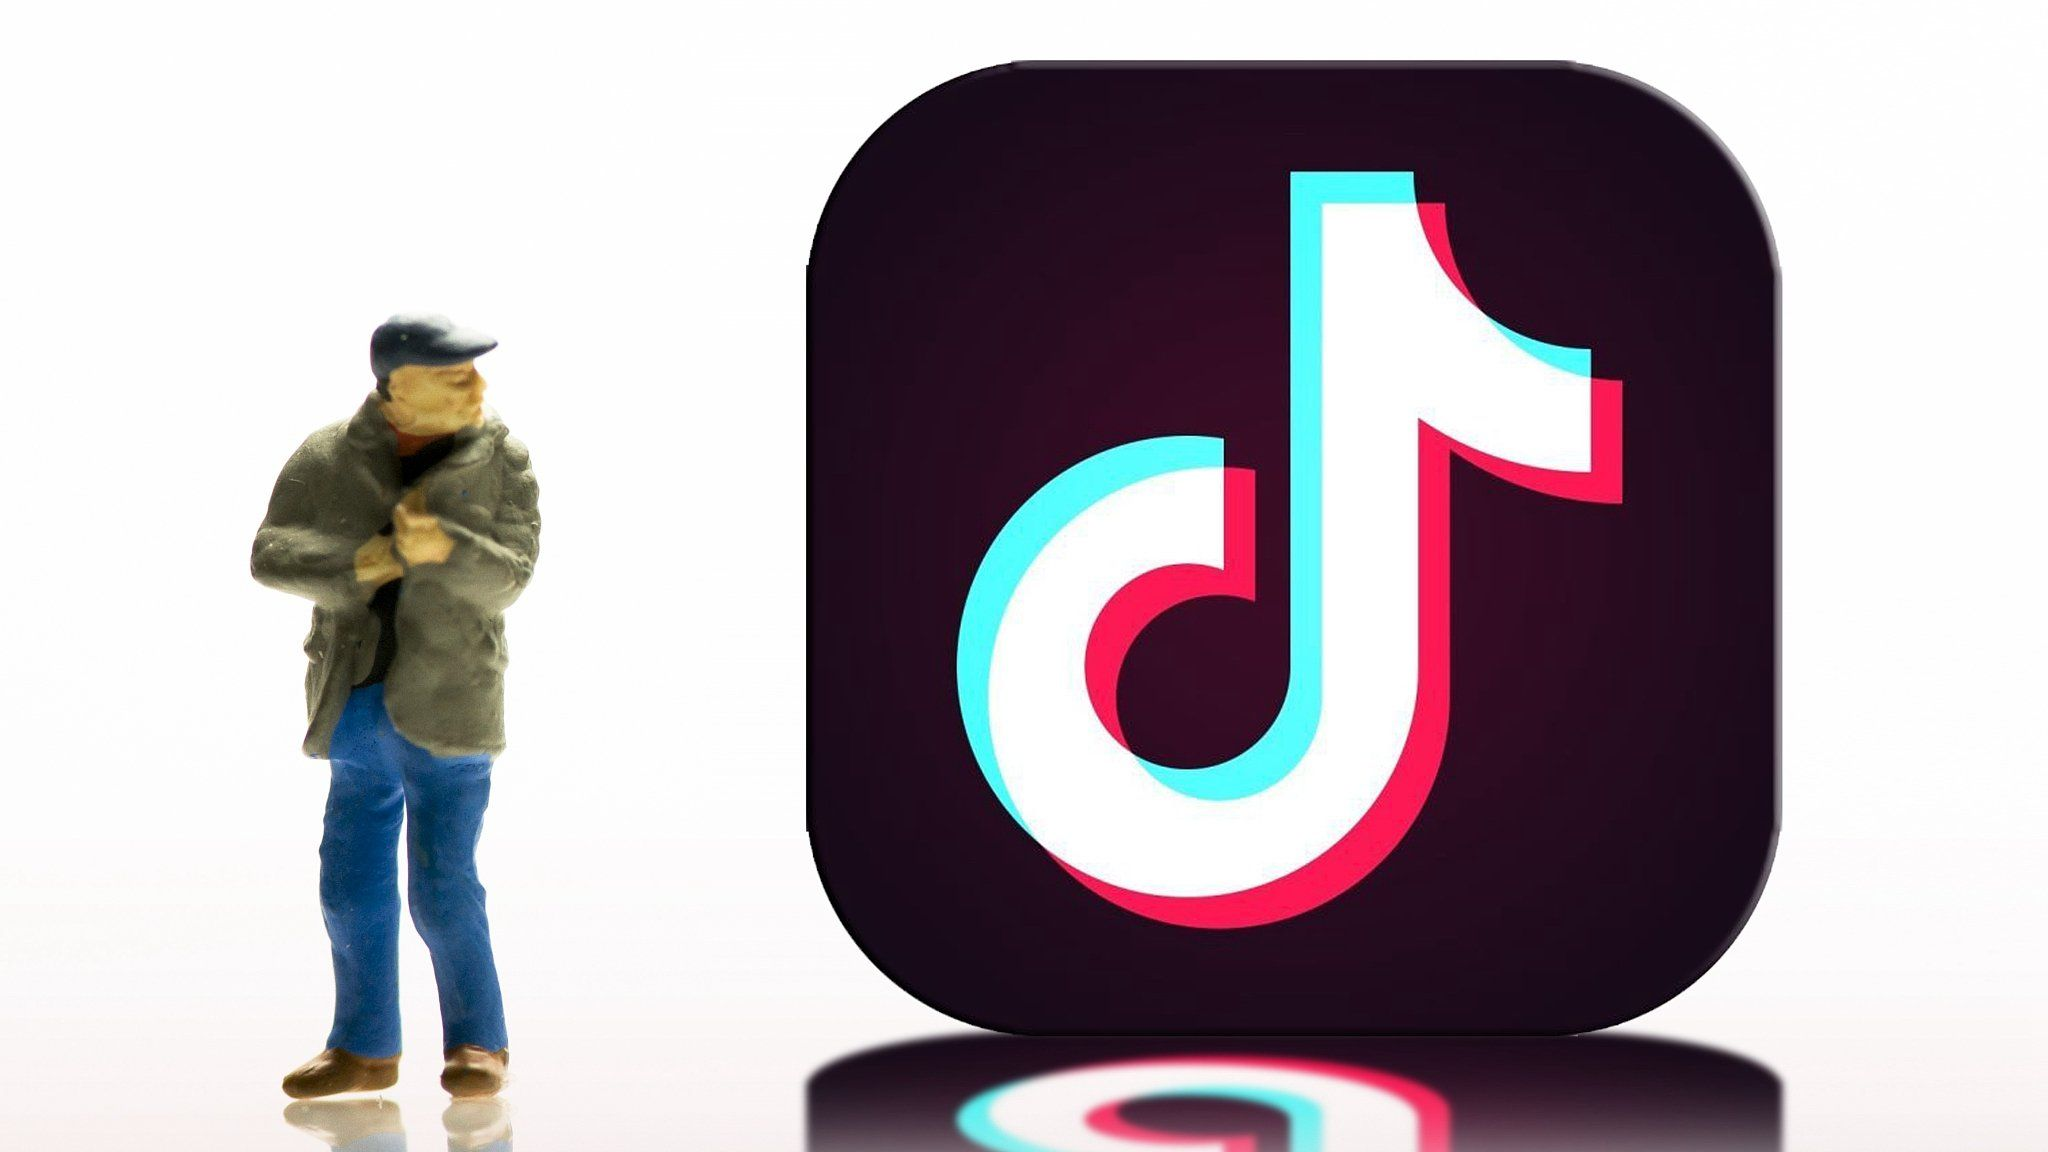 Chinese video app Tik Tok banned by Indonesia for 'inappropriate